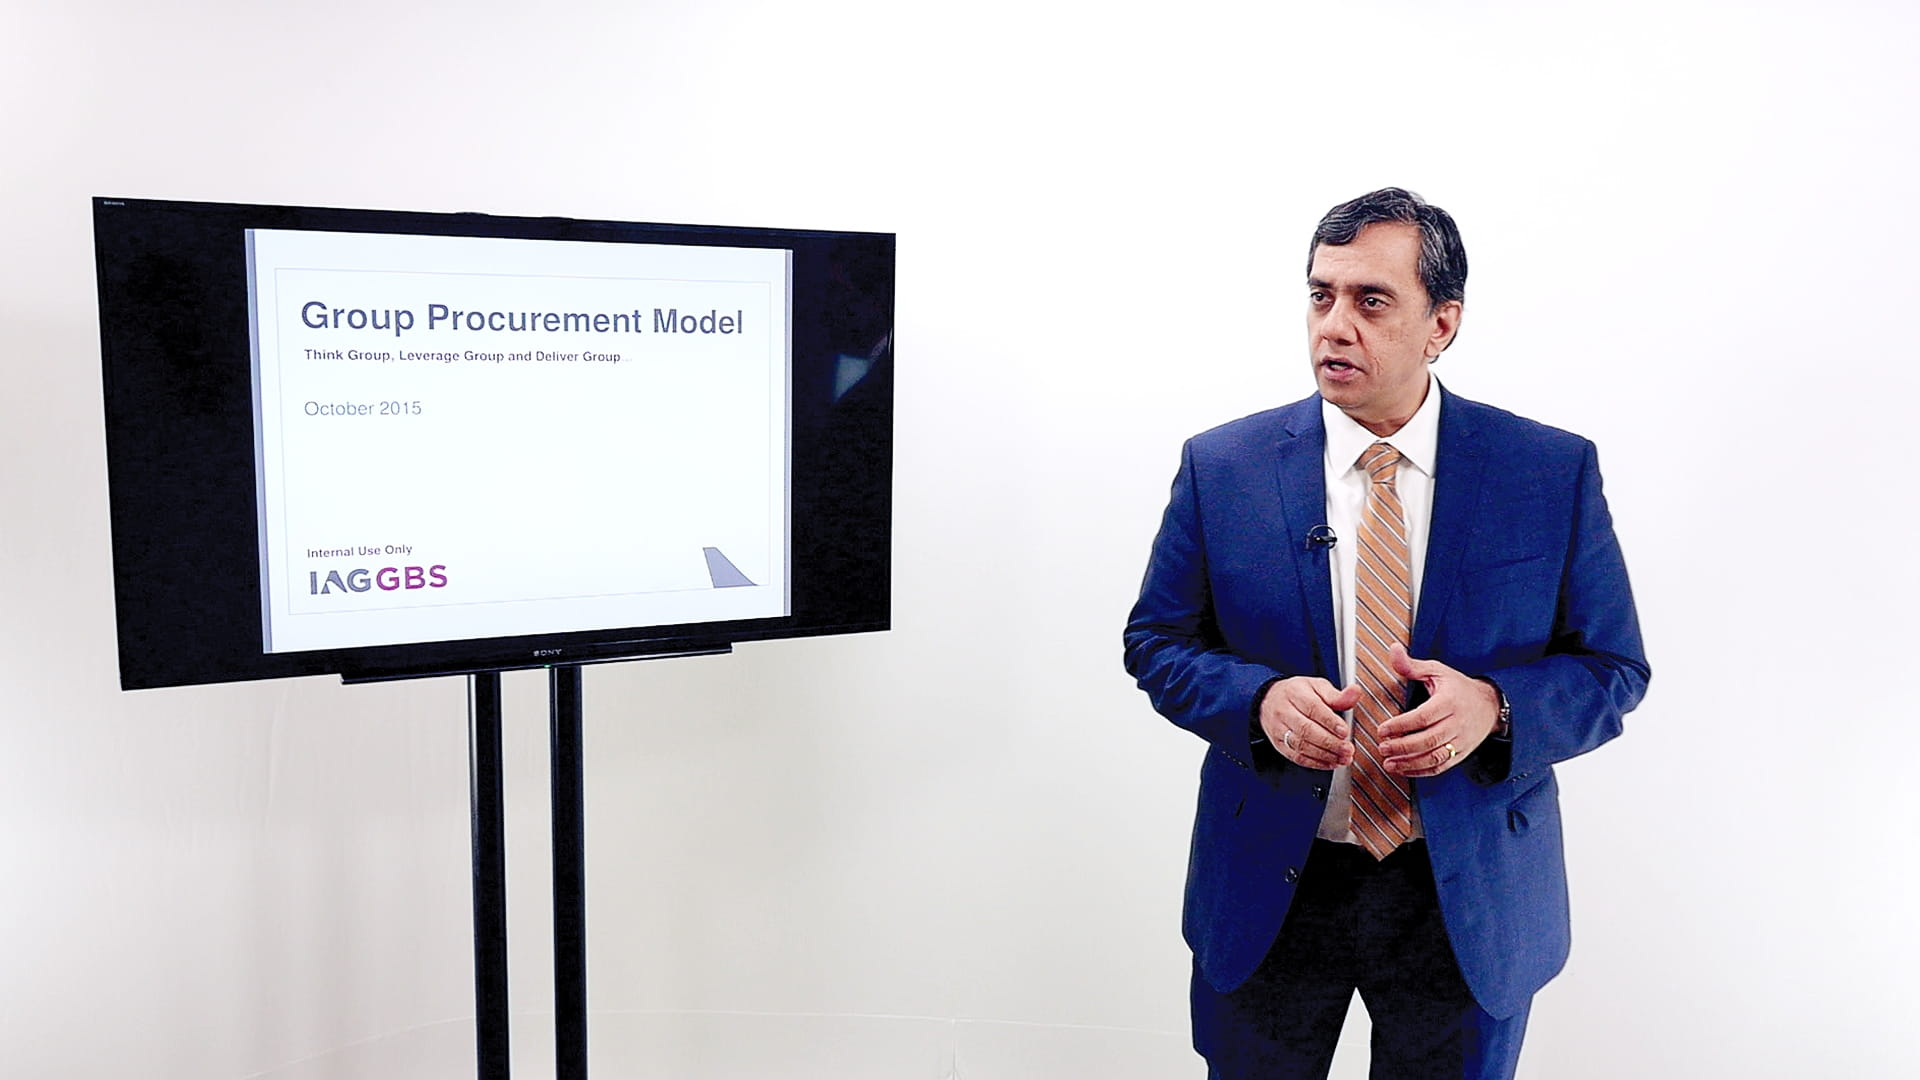 Presentation with PowerPoint at our London training studio